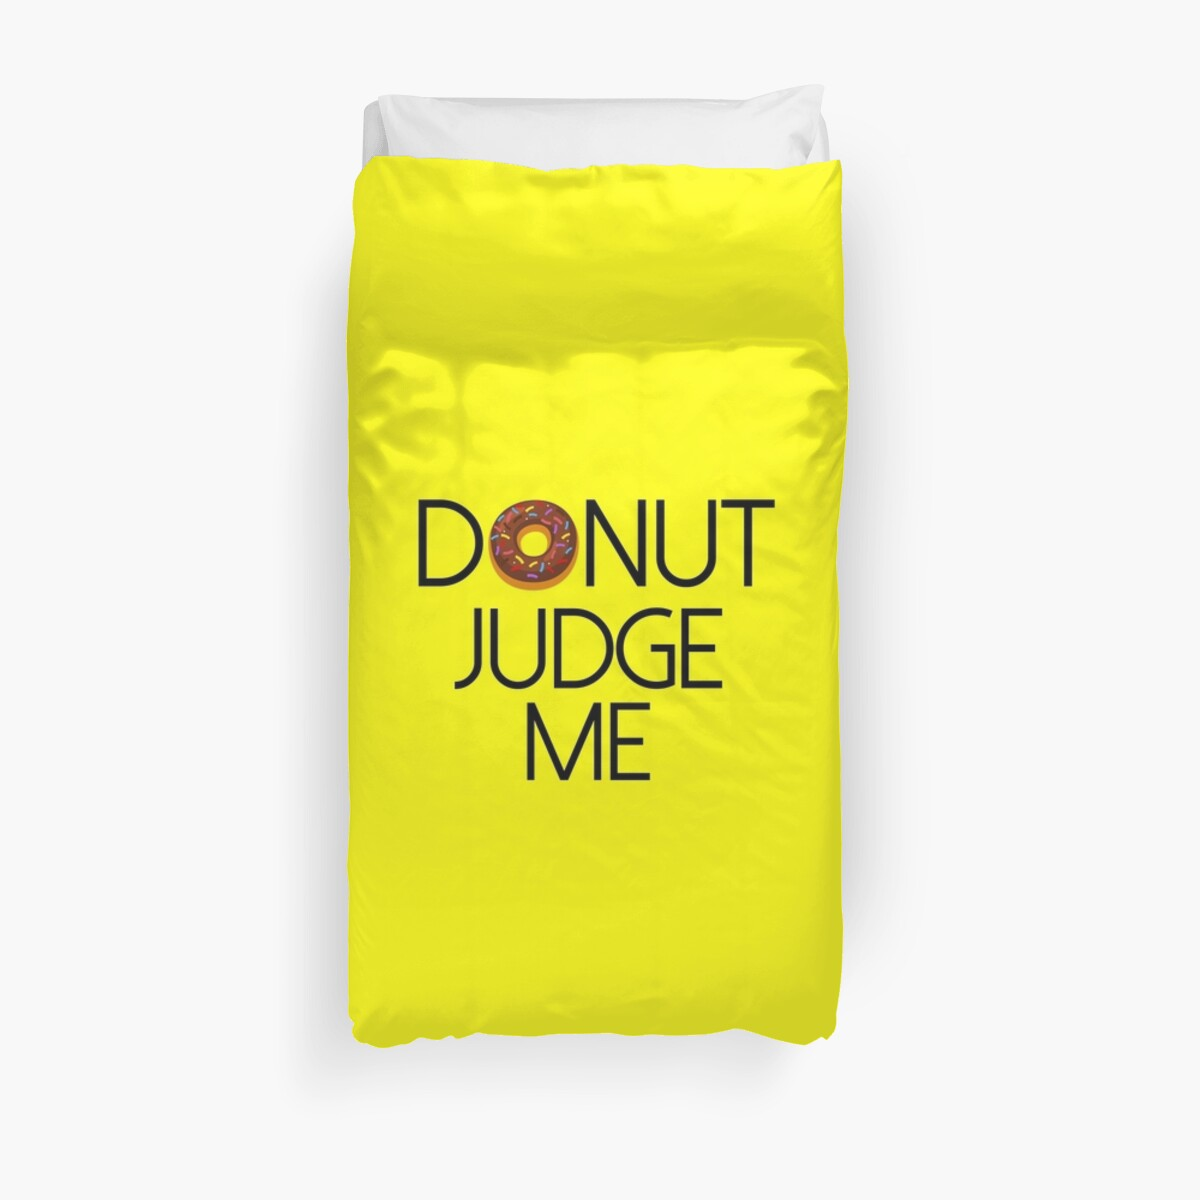 Donut Judge Me by SuperrSunday